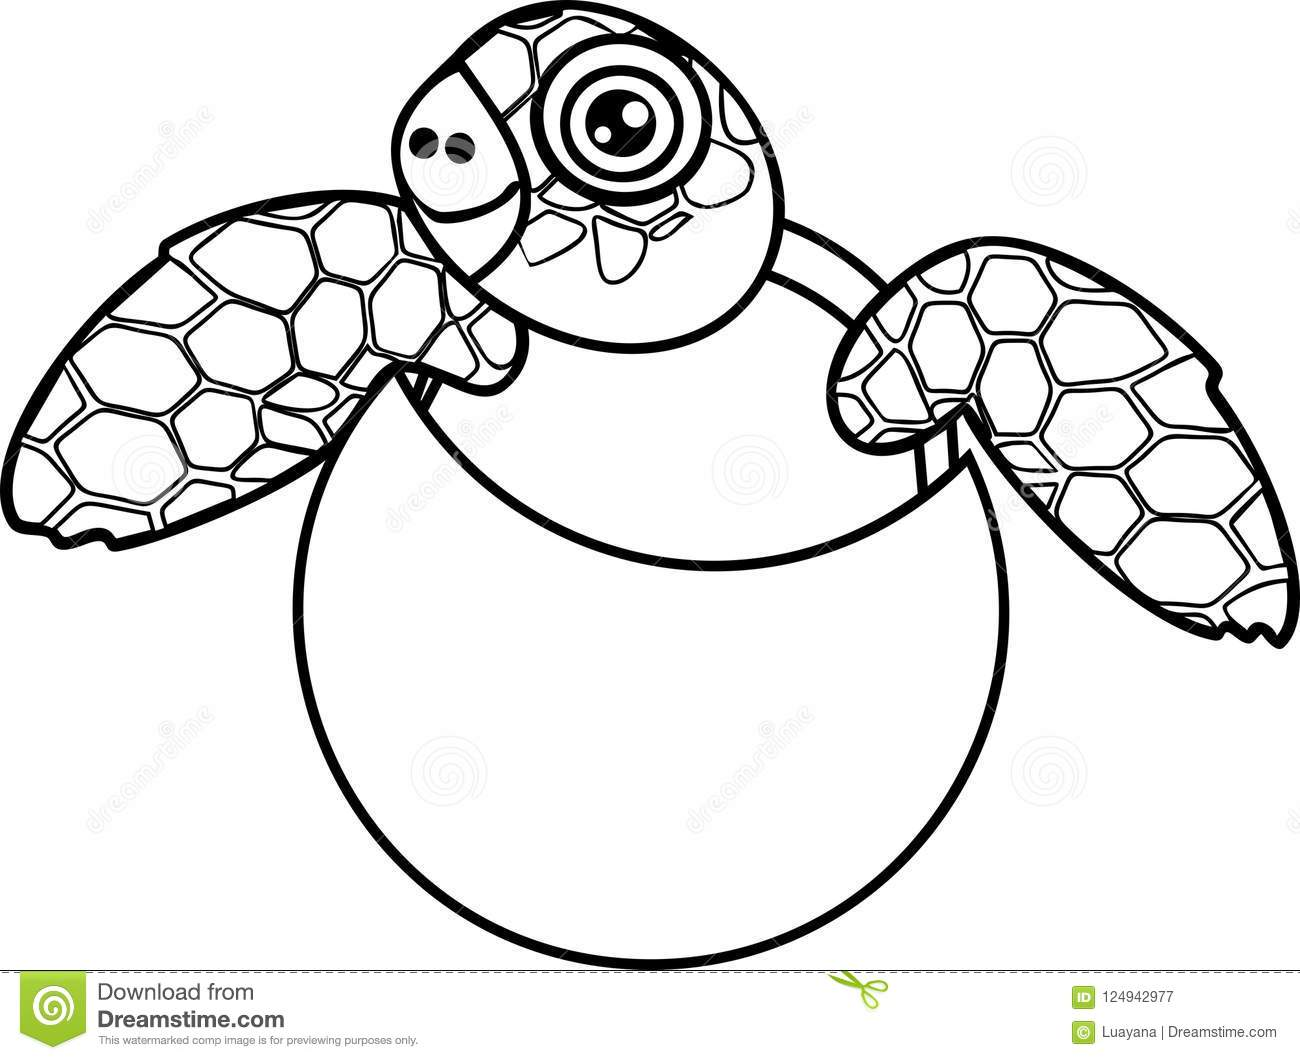 Baby sea turtle clipart black and white image free stock Sea Turtle Drawing For Kids | Free download best Sea Turtle Drawing ... image free stock